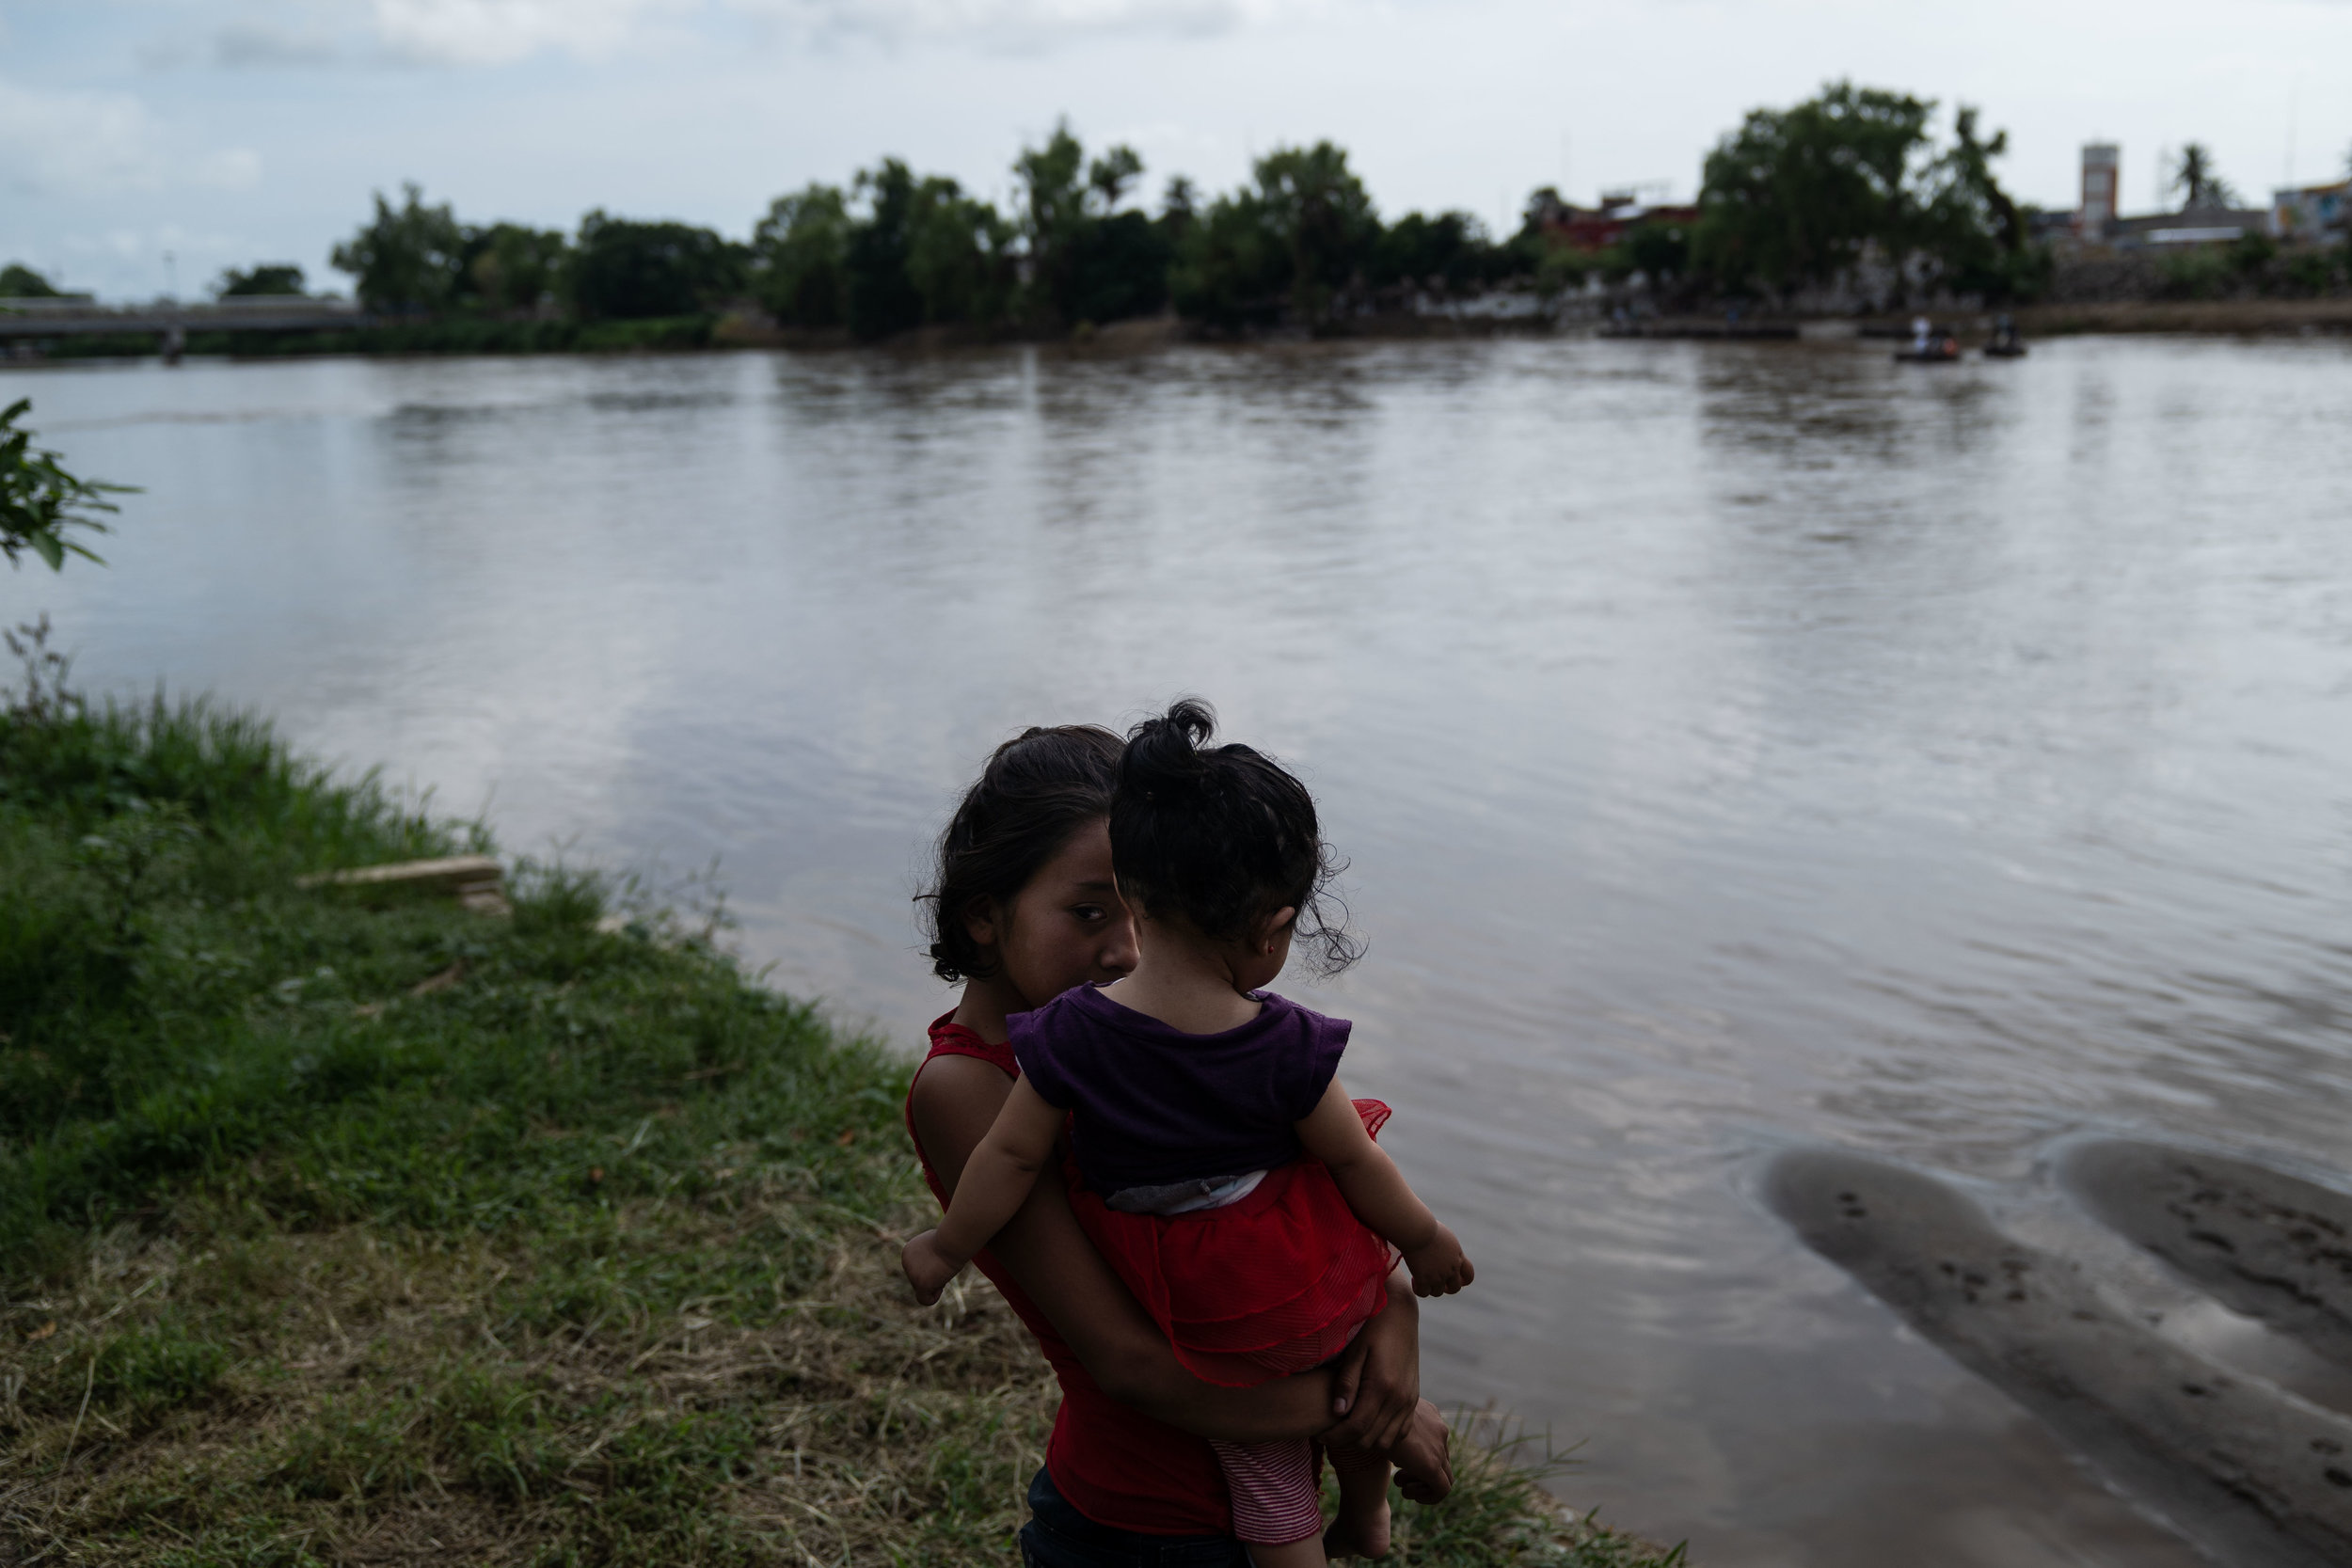 A woman and child stand next to the Suchiate river in Tecún Umán, Guatemala, 2018.